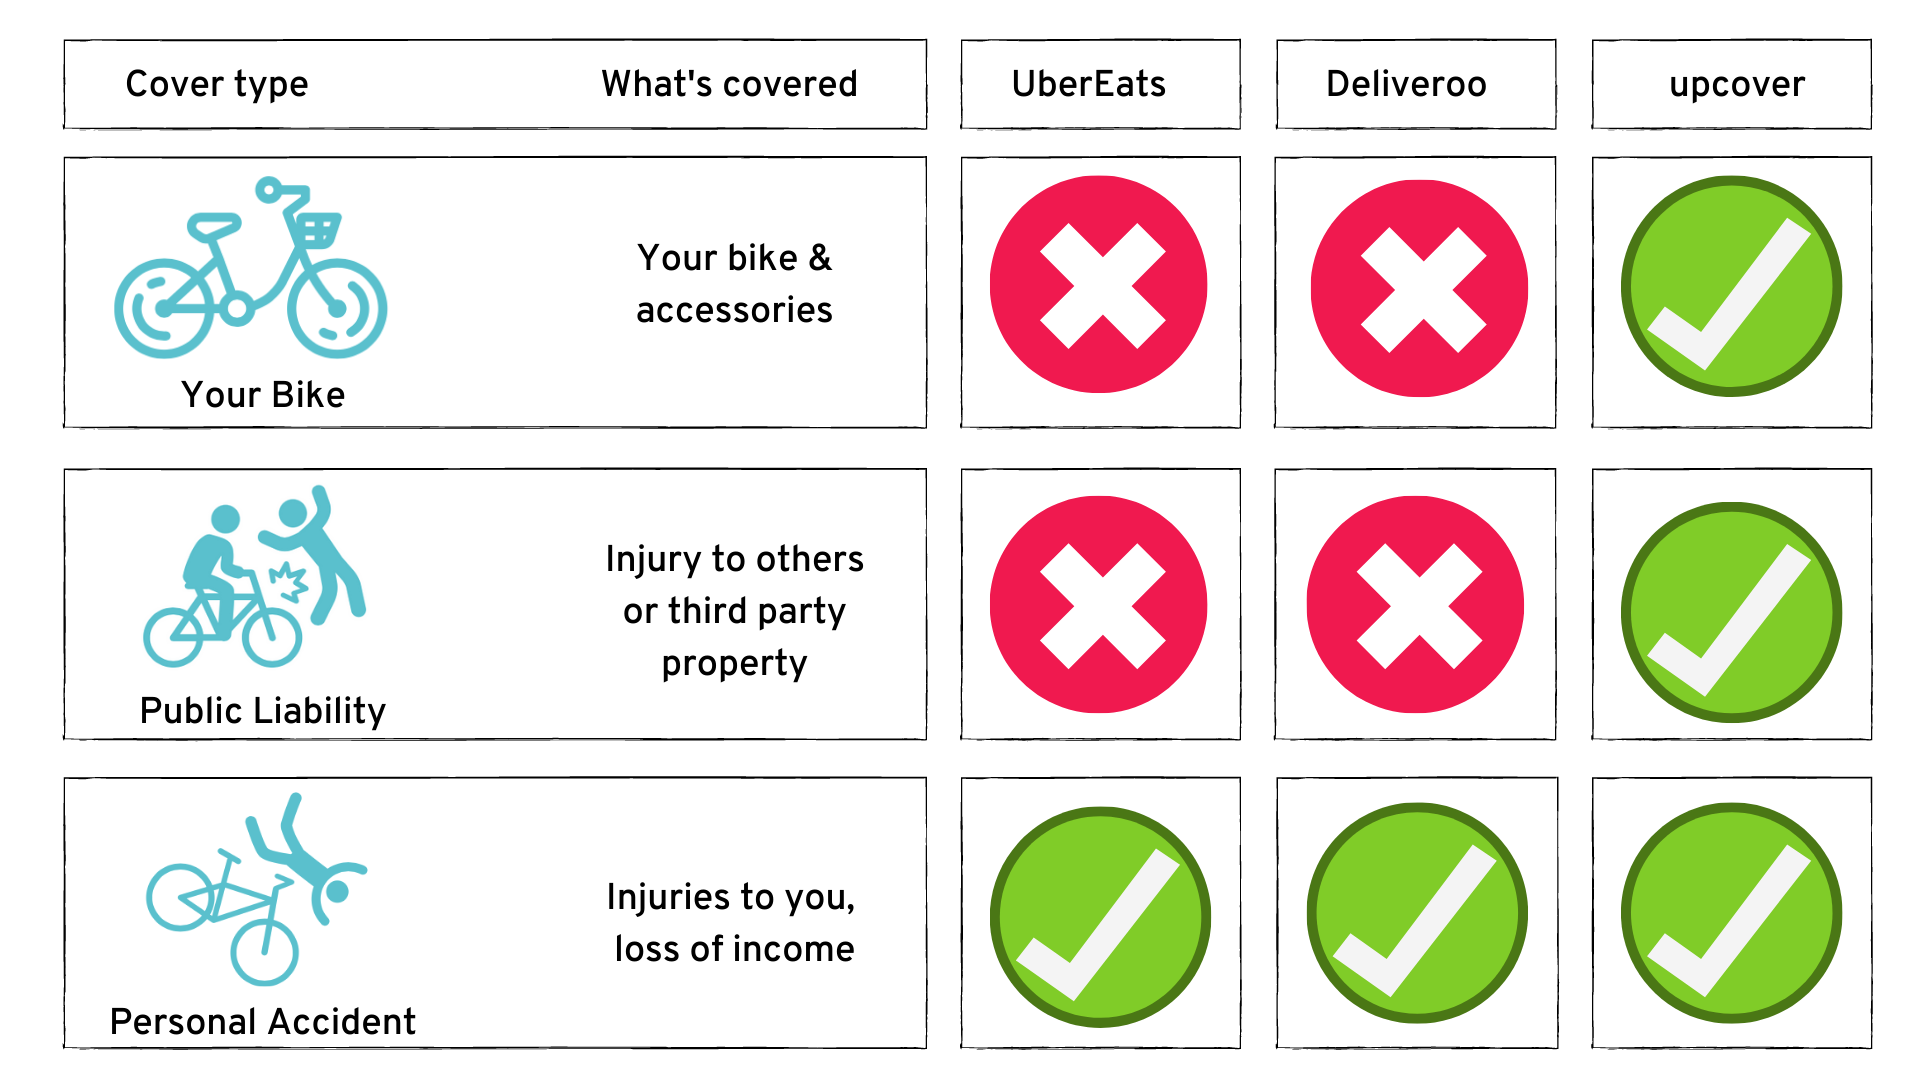 UberEATS, Deliveroo and upcover Insurance